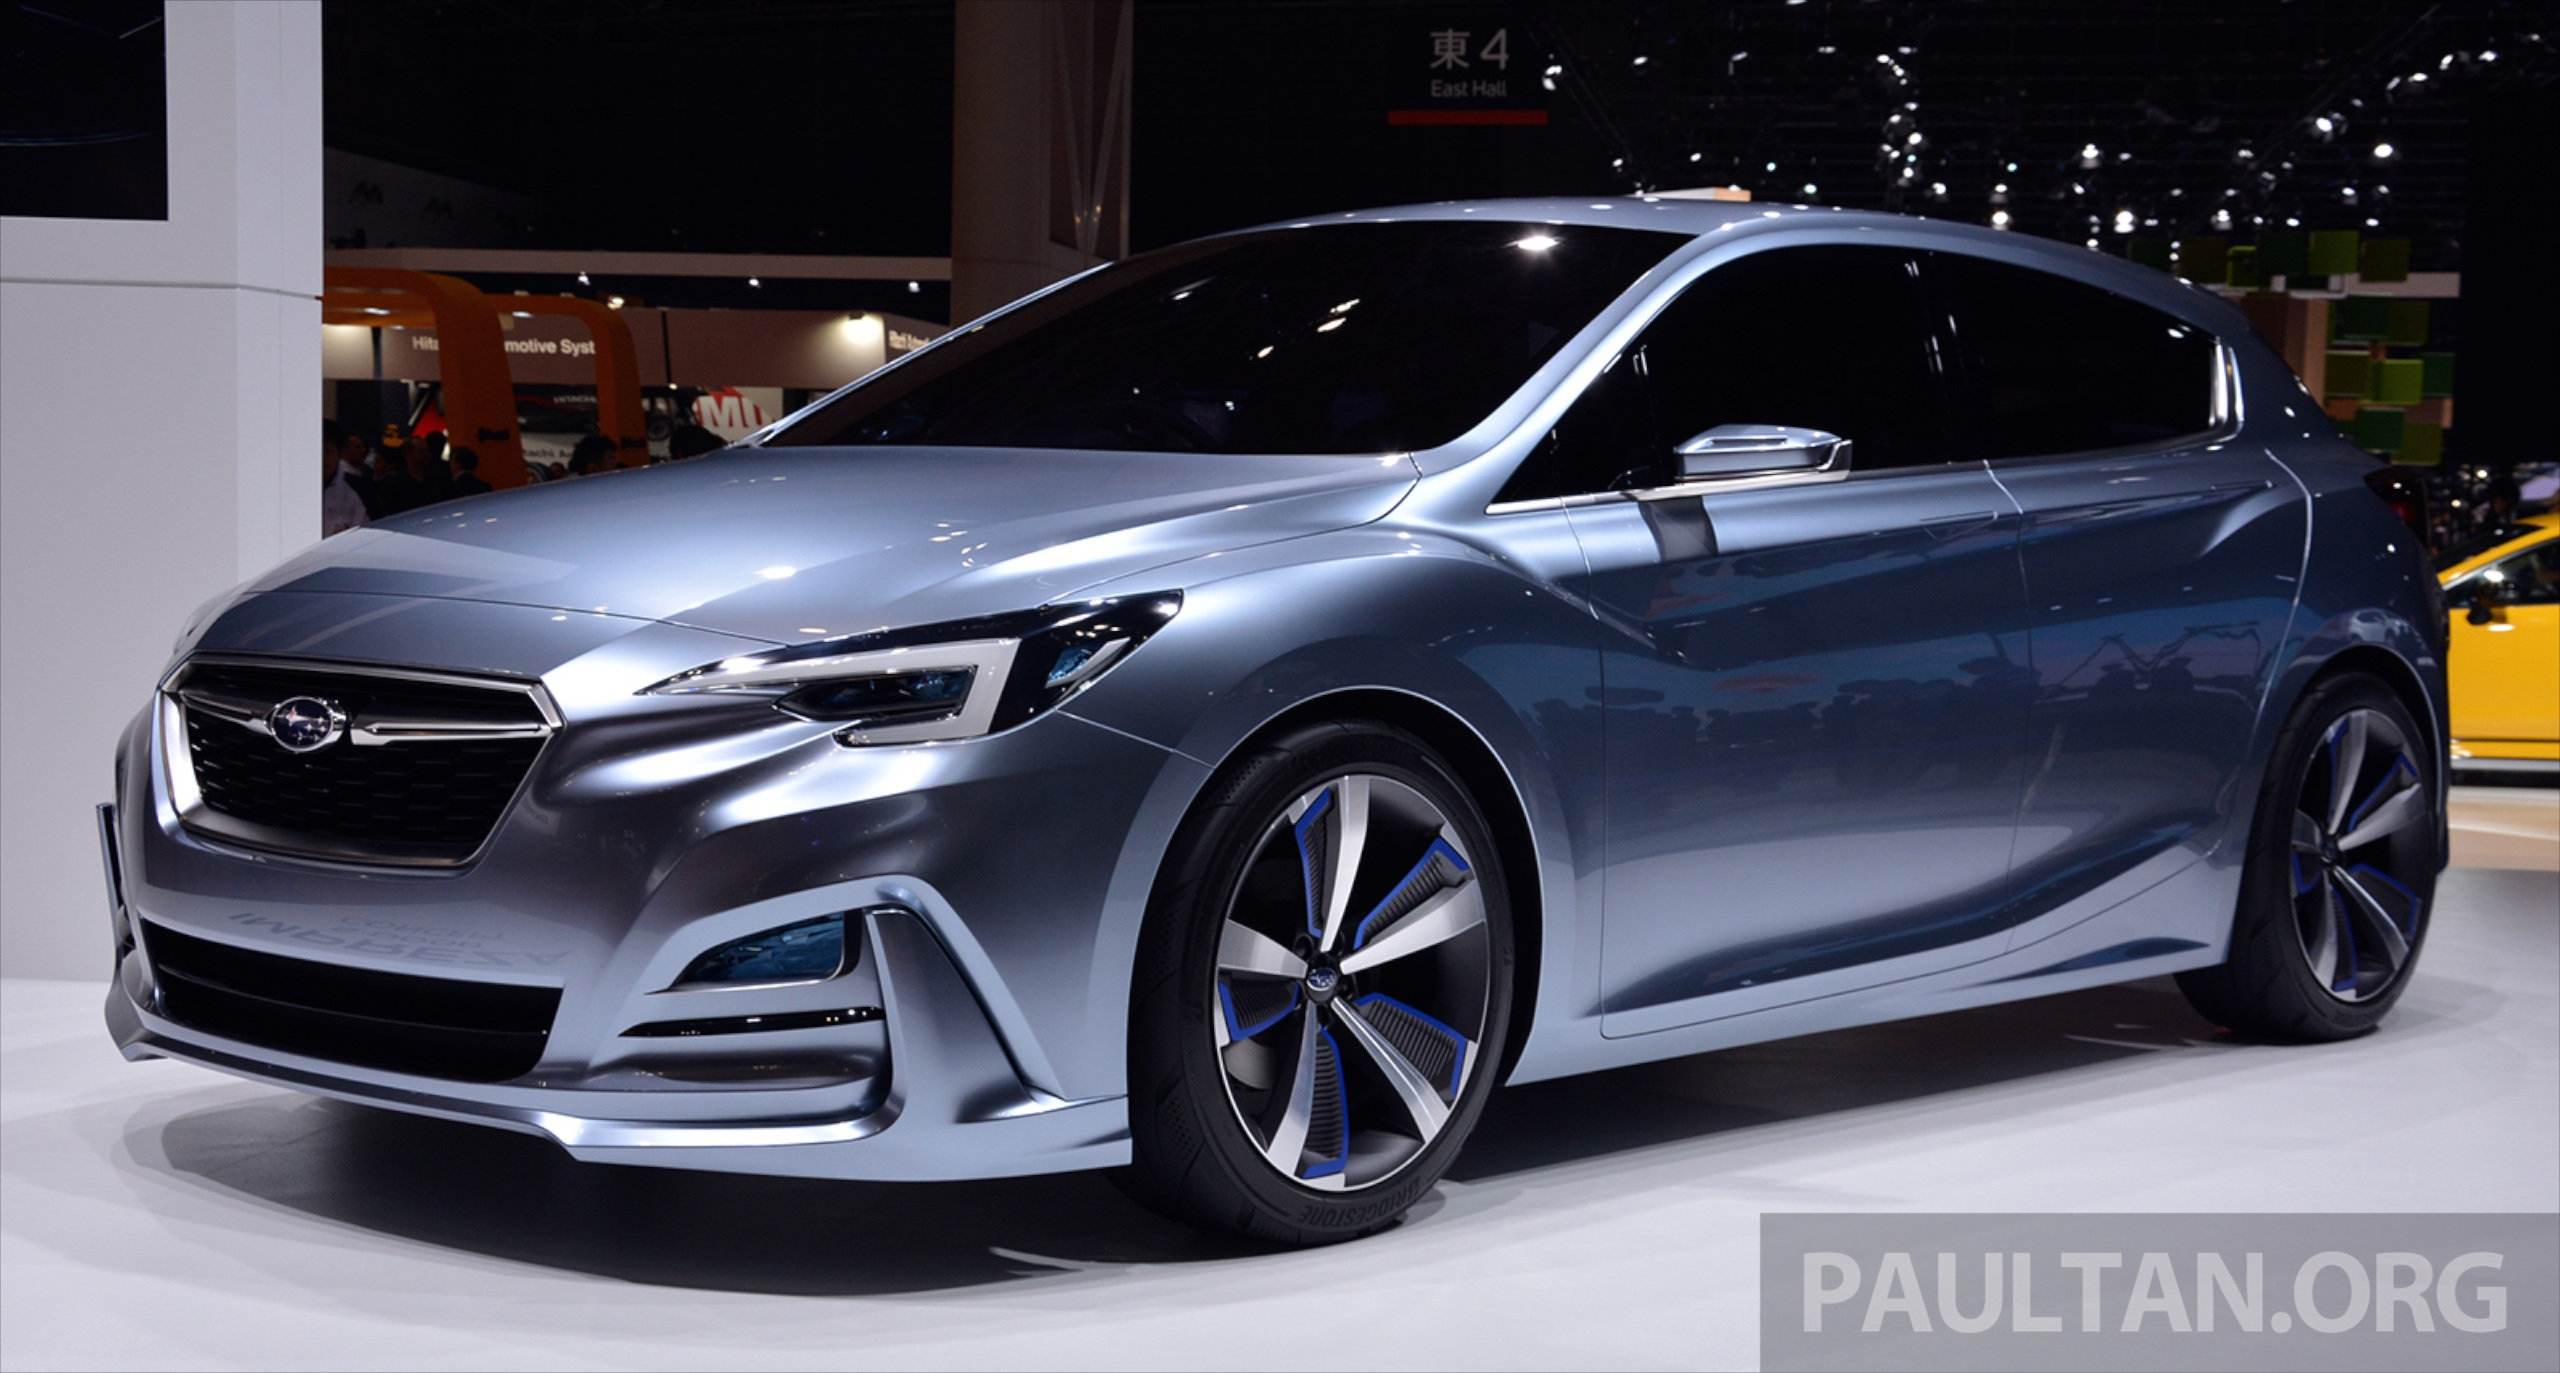 2017 subaru impreza will ape 5 door concept looks. Black Bedroom Furniture Sets. Home Design Ideas